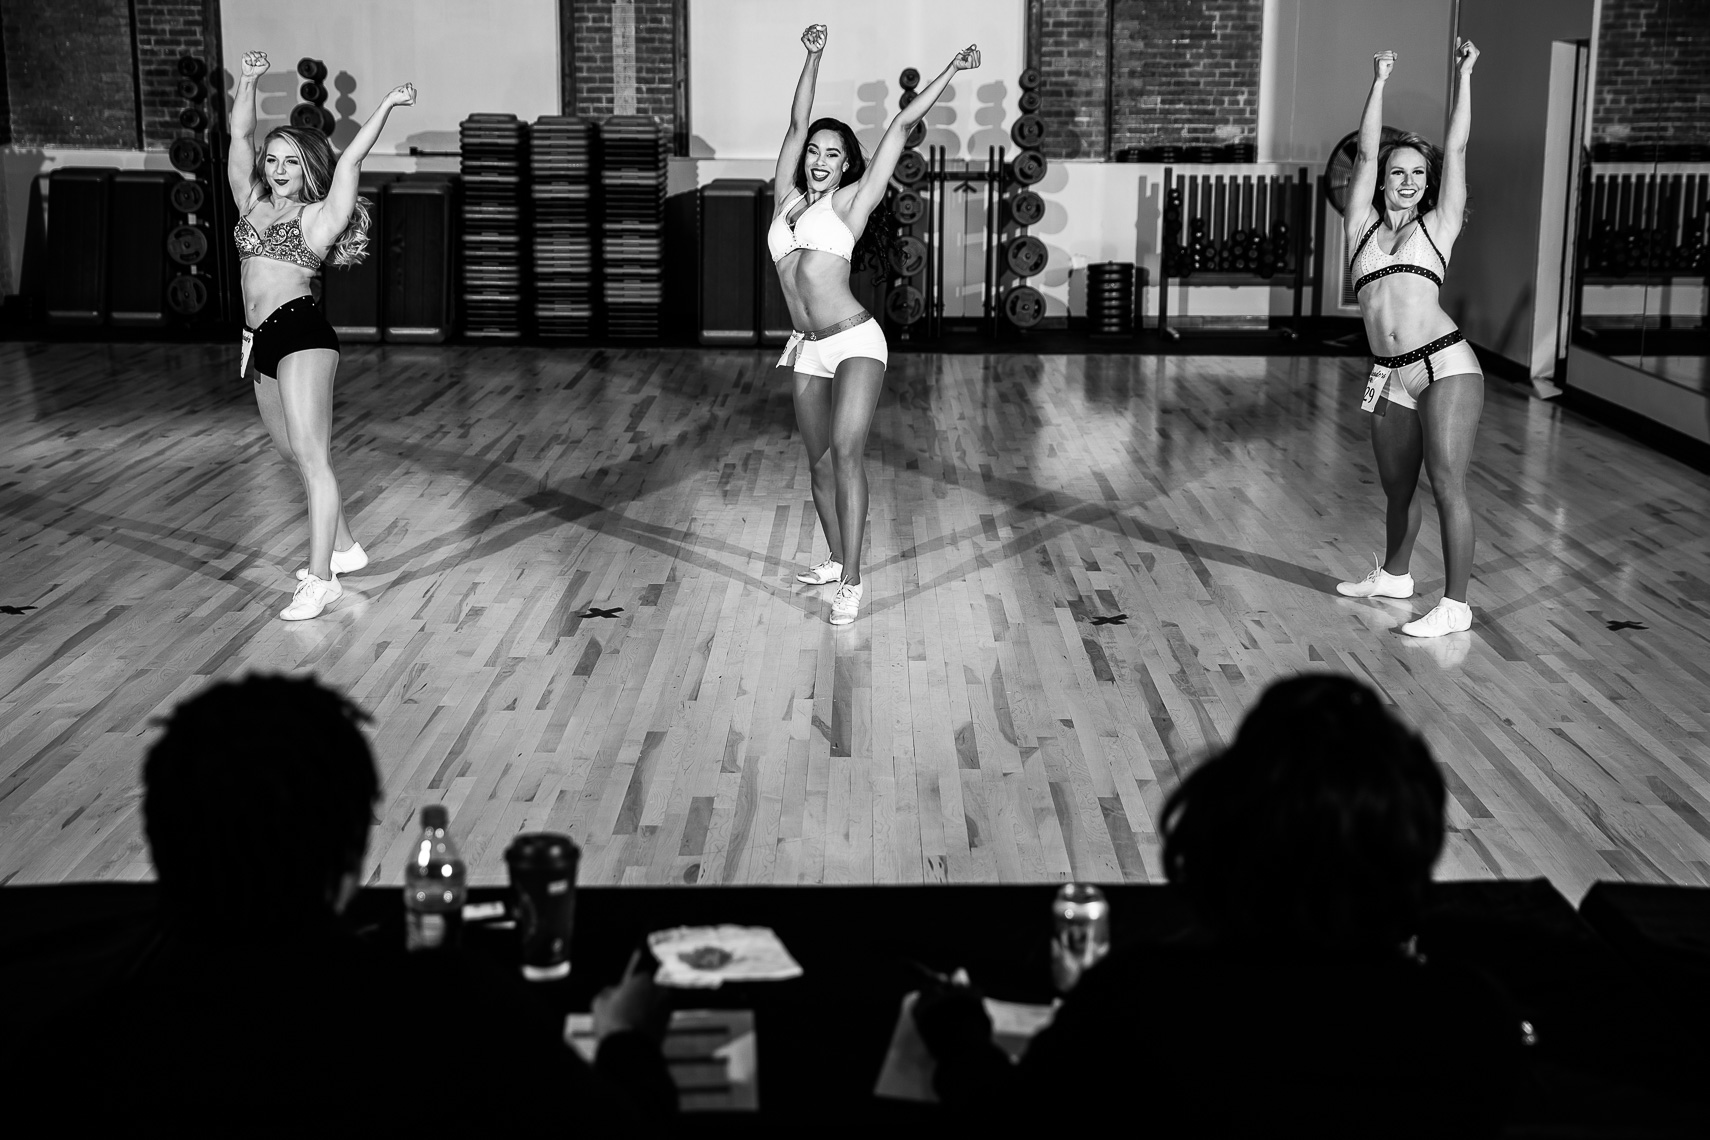 makingthecut18_ NFL cheerleaders cheerleading is a sport Baltimore Ravens cheerleading tryouts documentary photographer in Baltimore sports photojournalism documentary photos professional cheerleaders athletes cheerleading photos